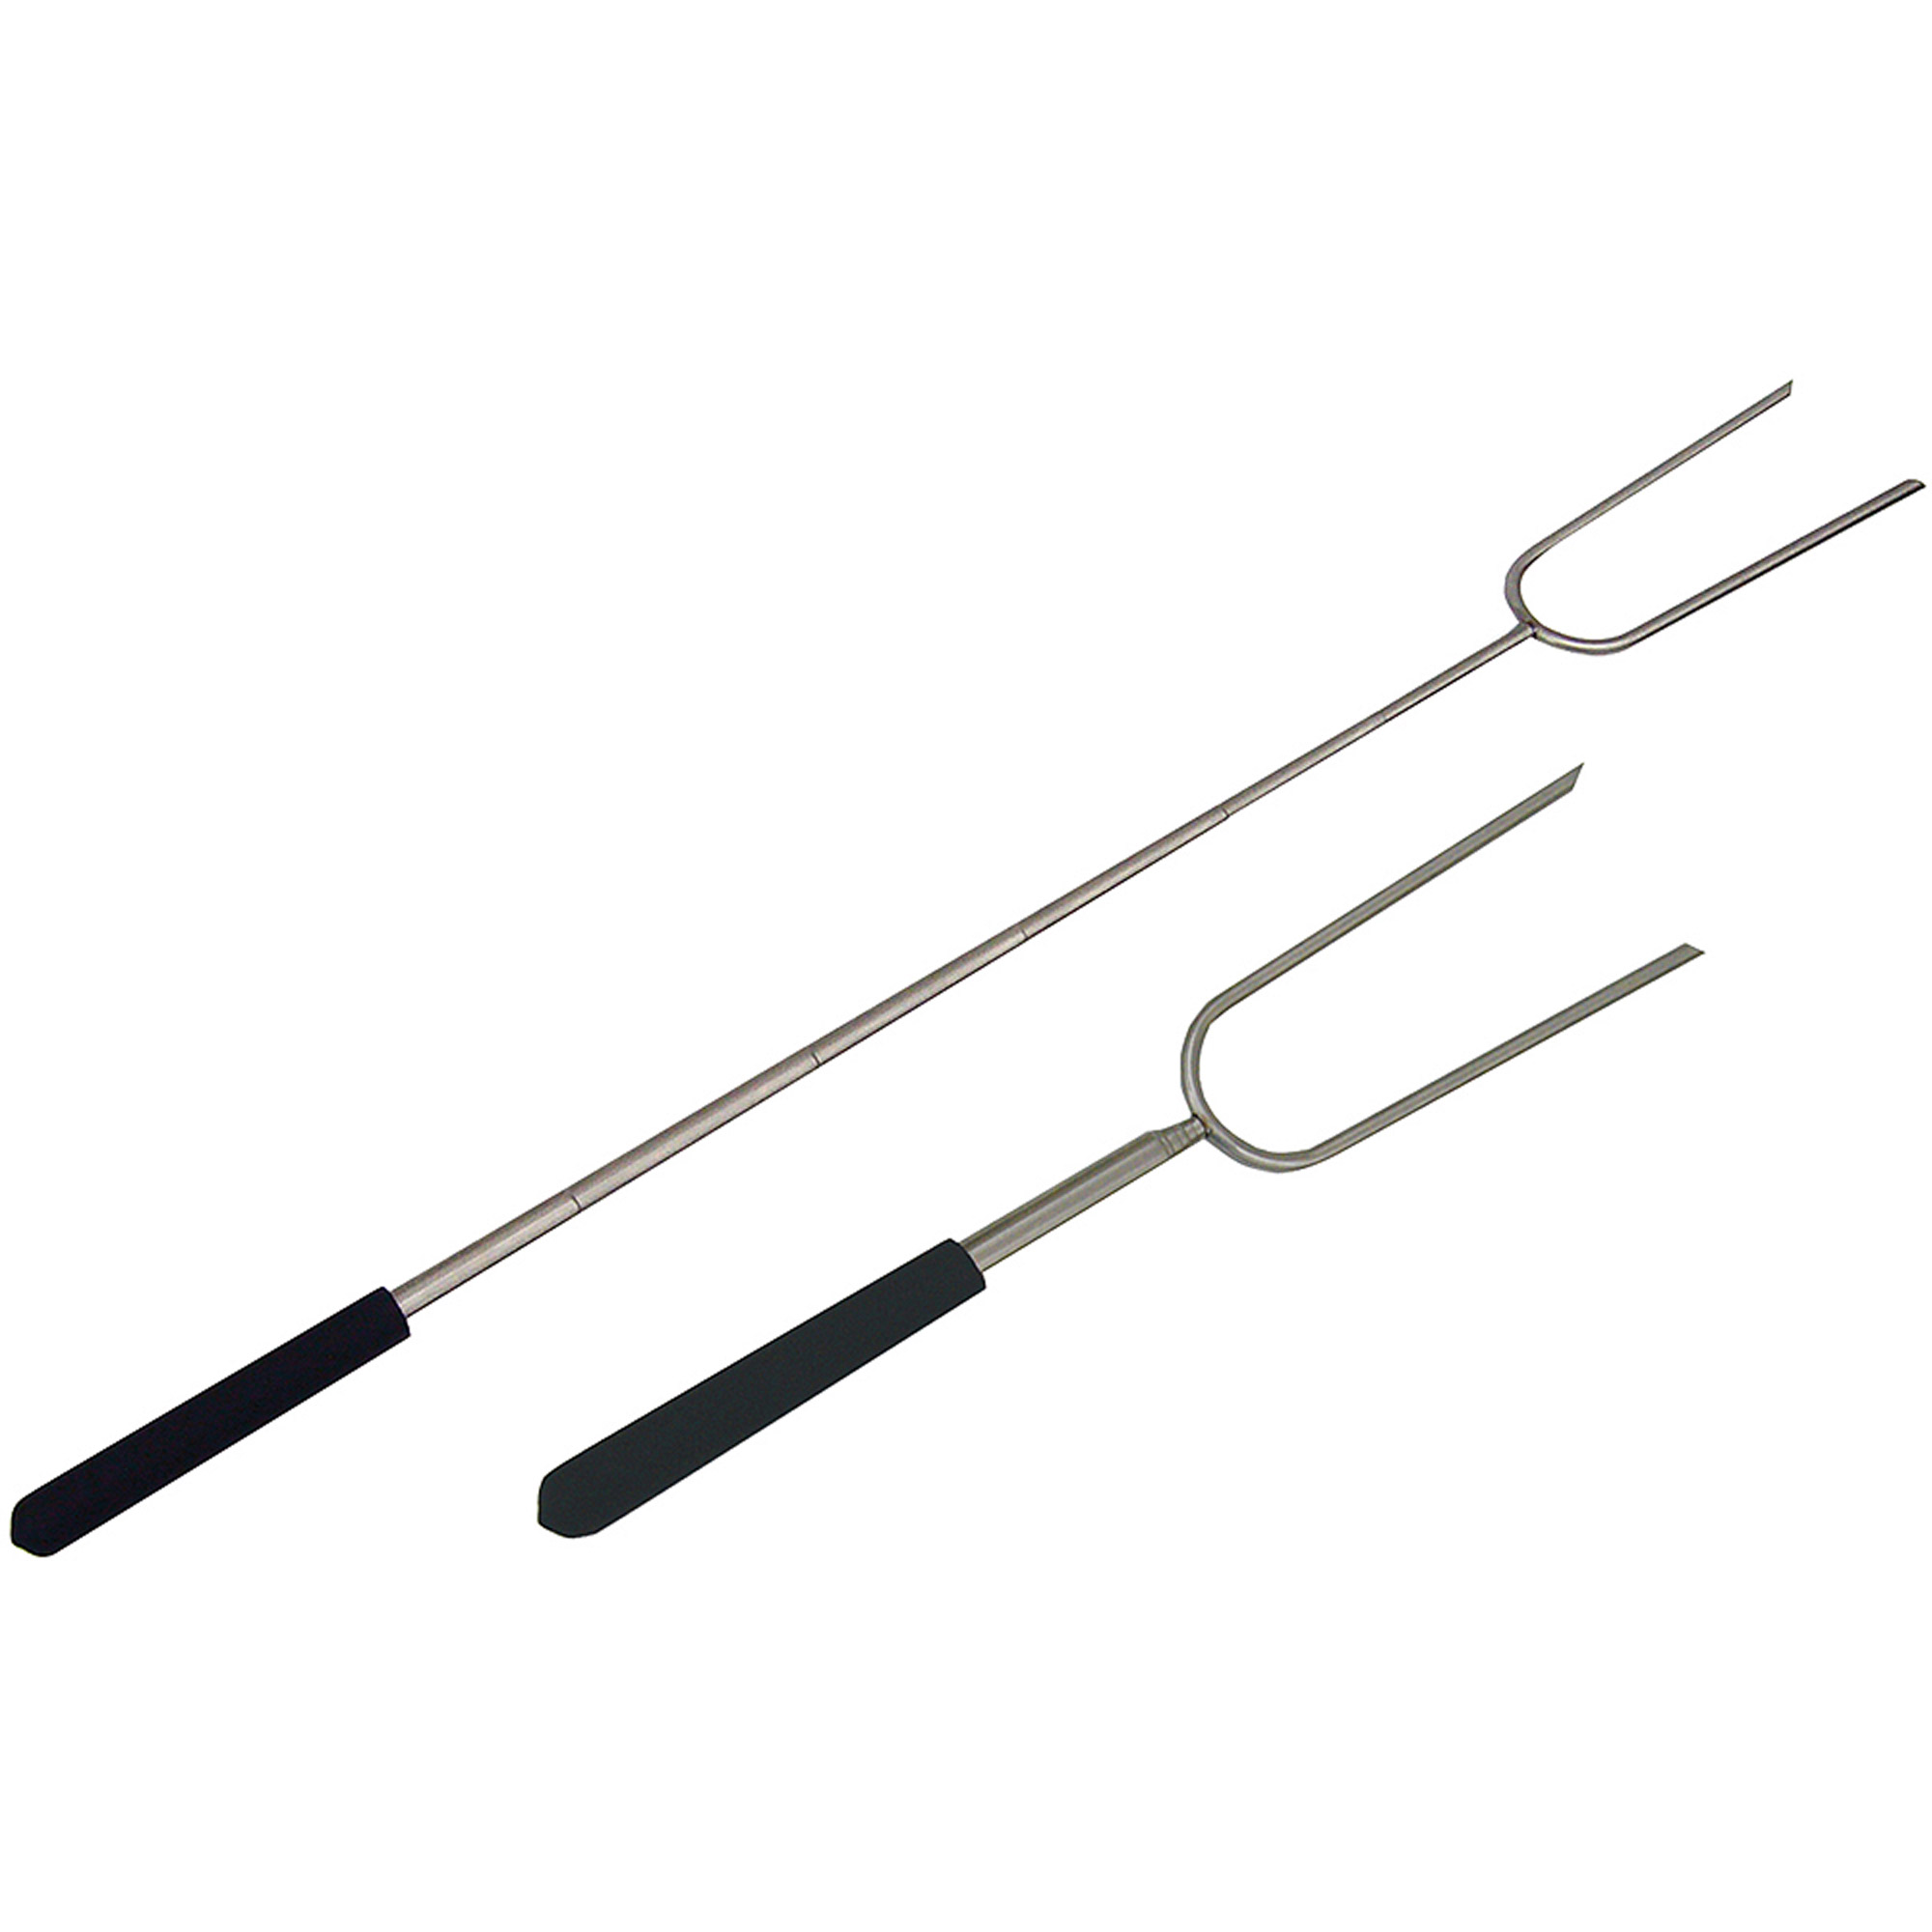 Image of Prime Products Telescoping Hot Dog Fork, 25-0601